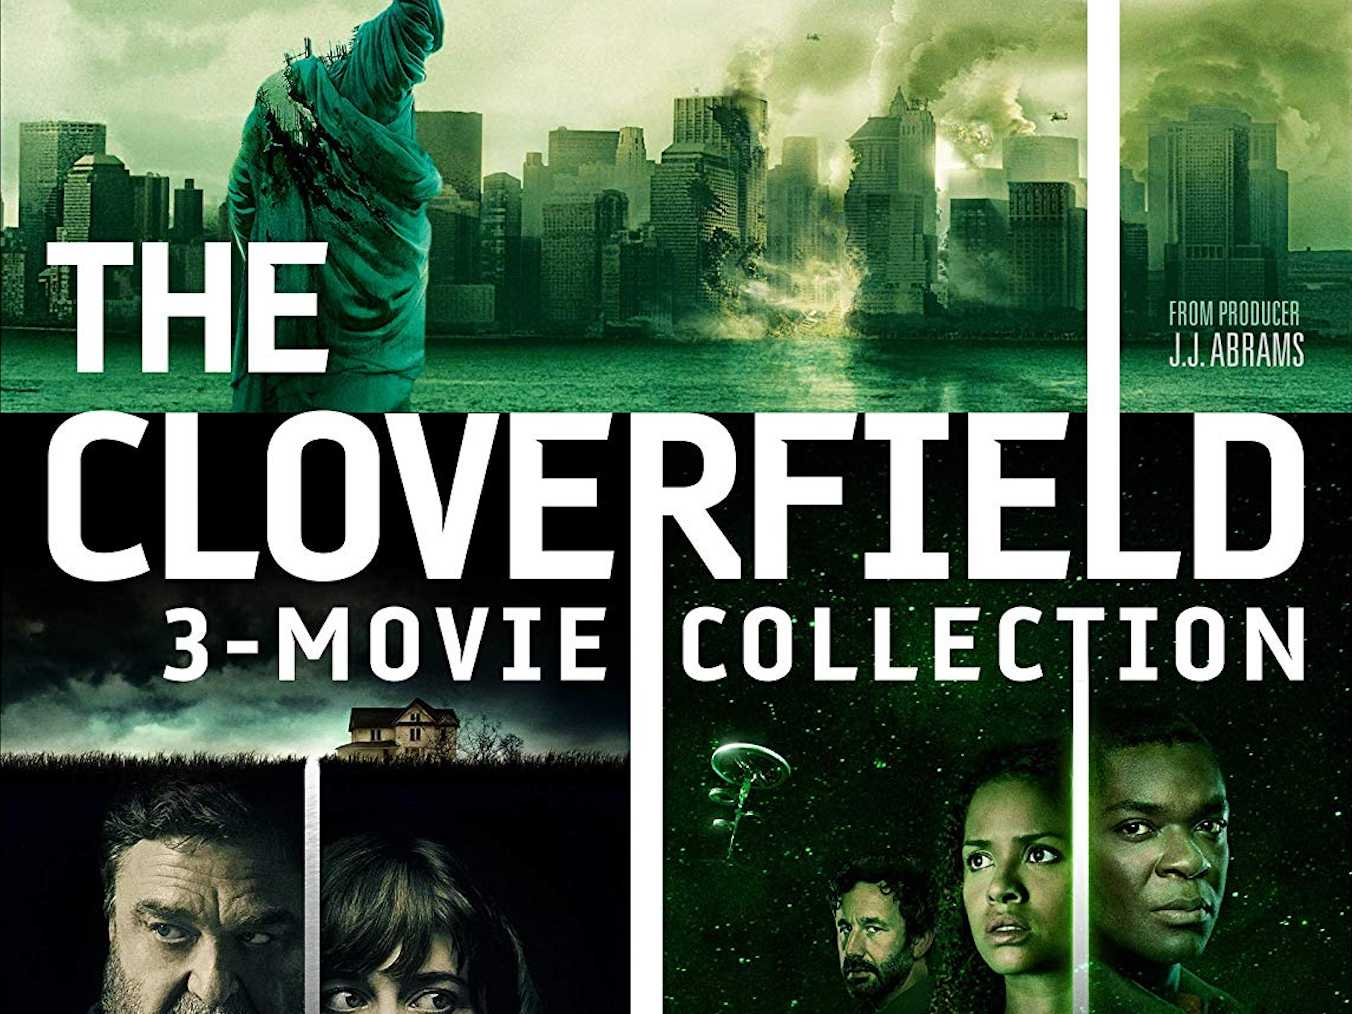 Cloverfield - 3 Movie Collection